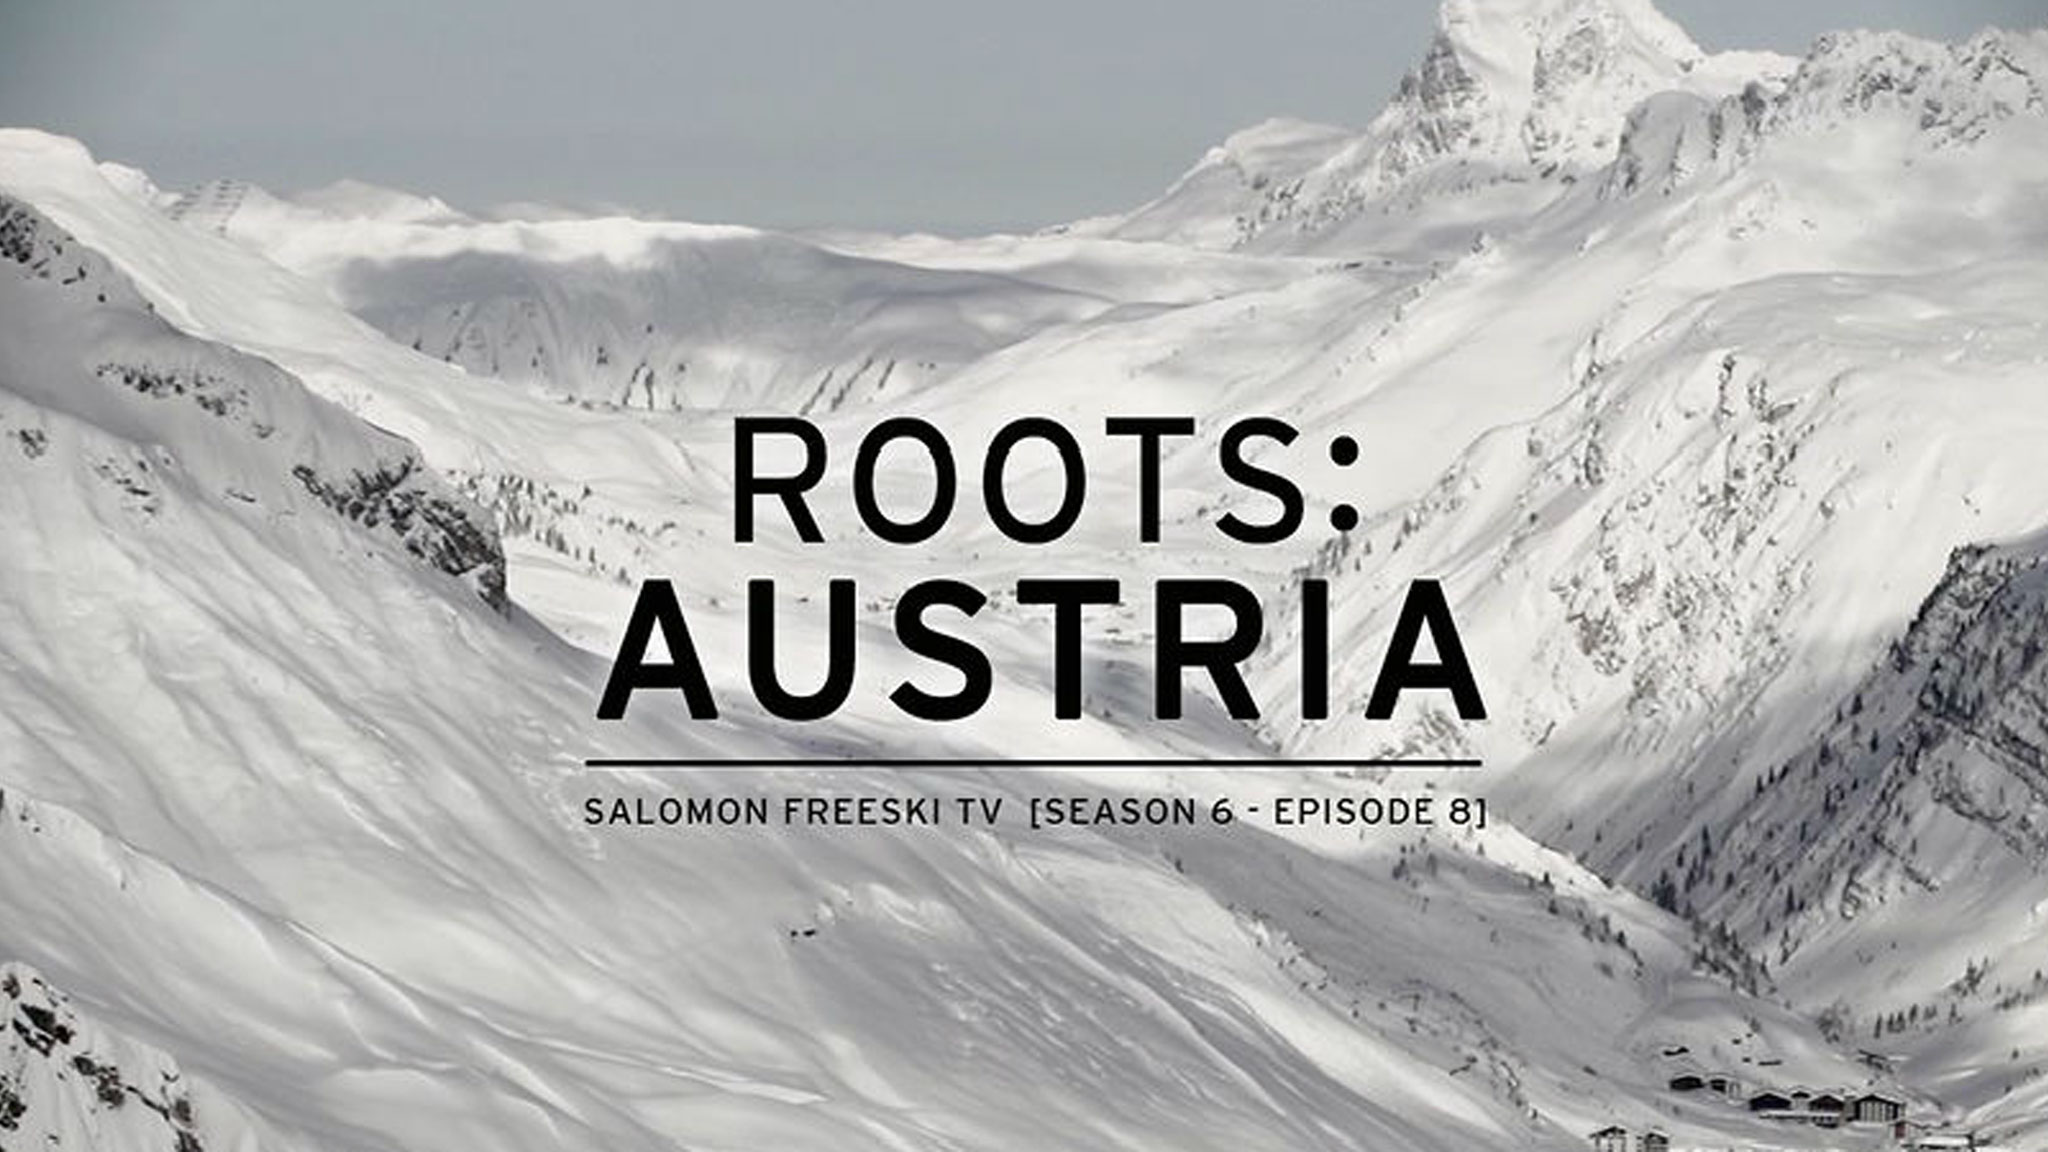 Salomon Freeski TV crew heads to Austria in the latest episode.